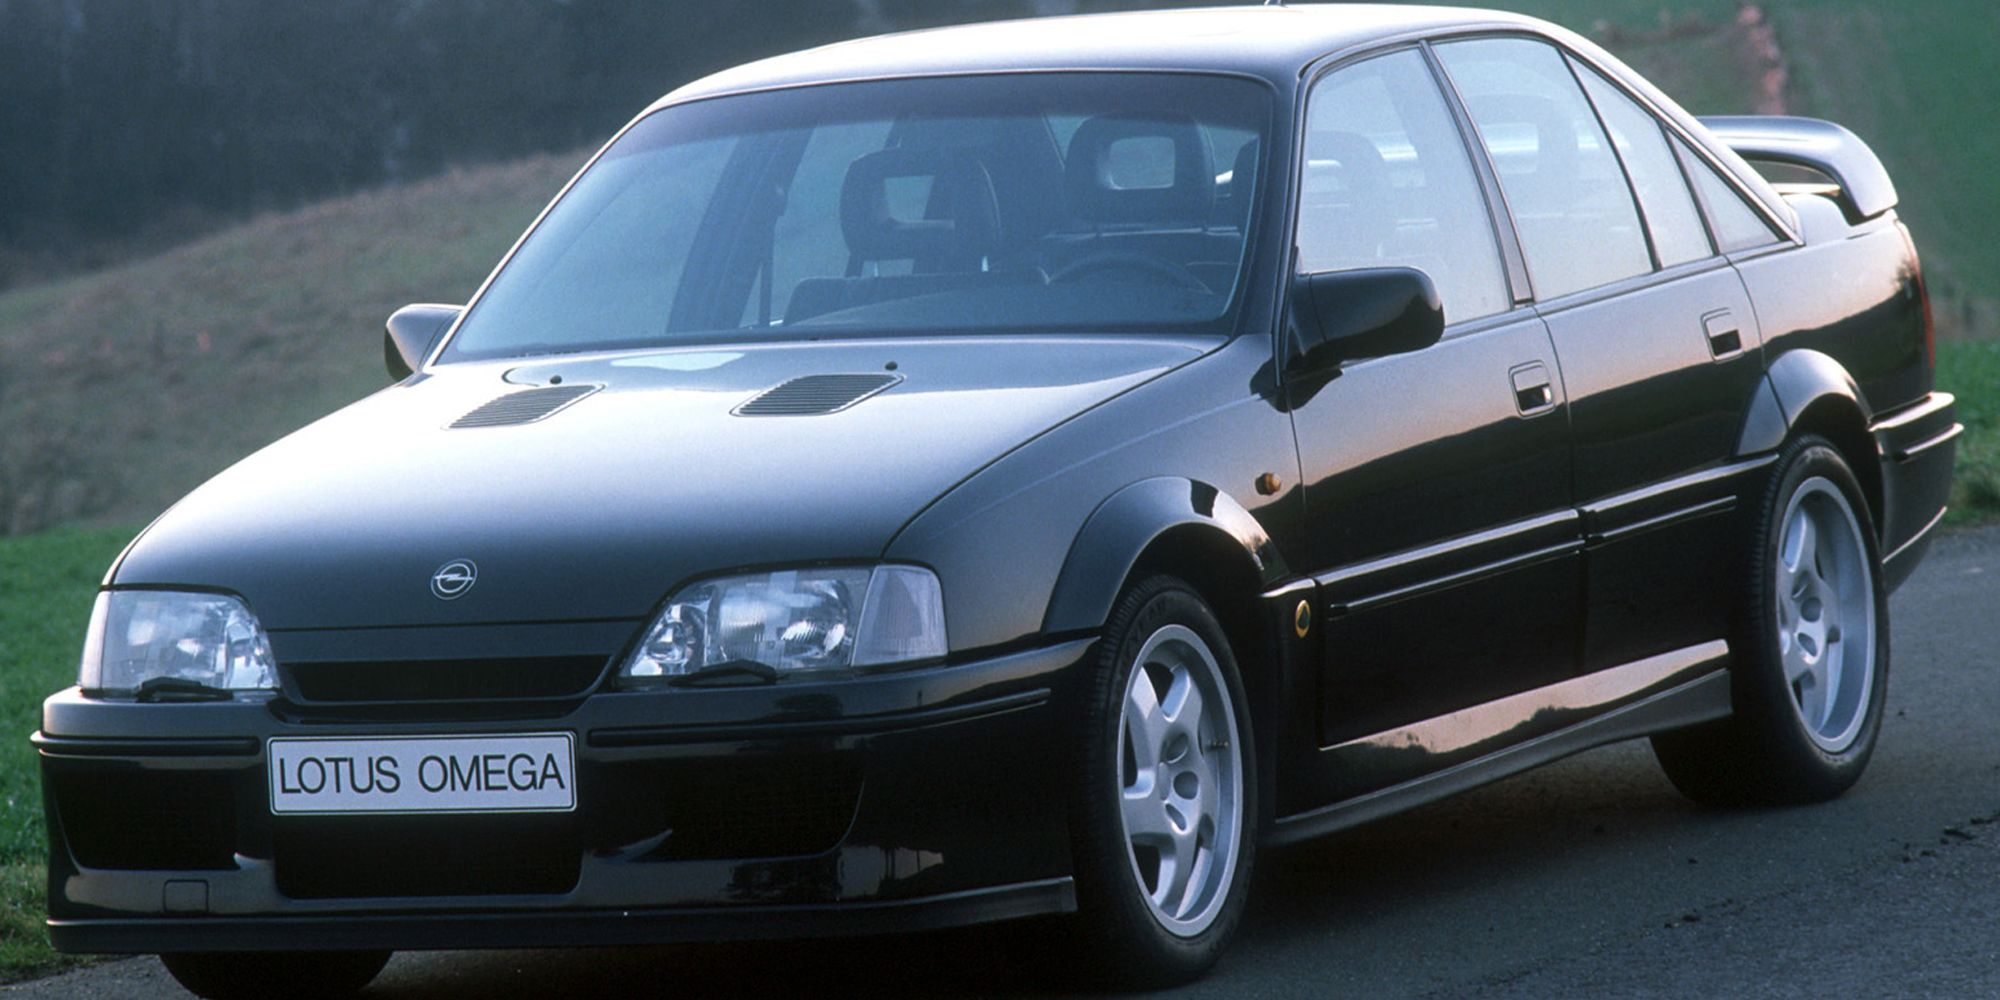 5 Awesome European Cars We'd Love To Have In The States (5 We Wouldn't Touch)